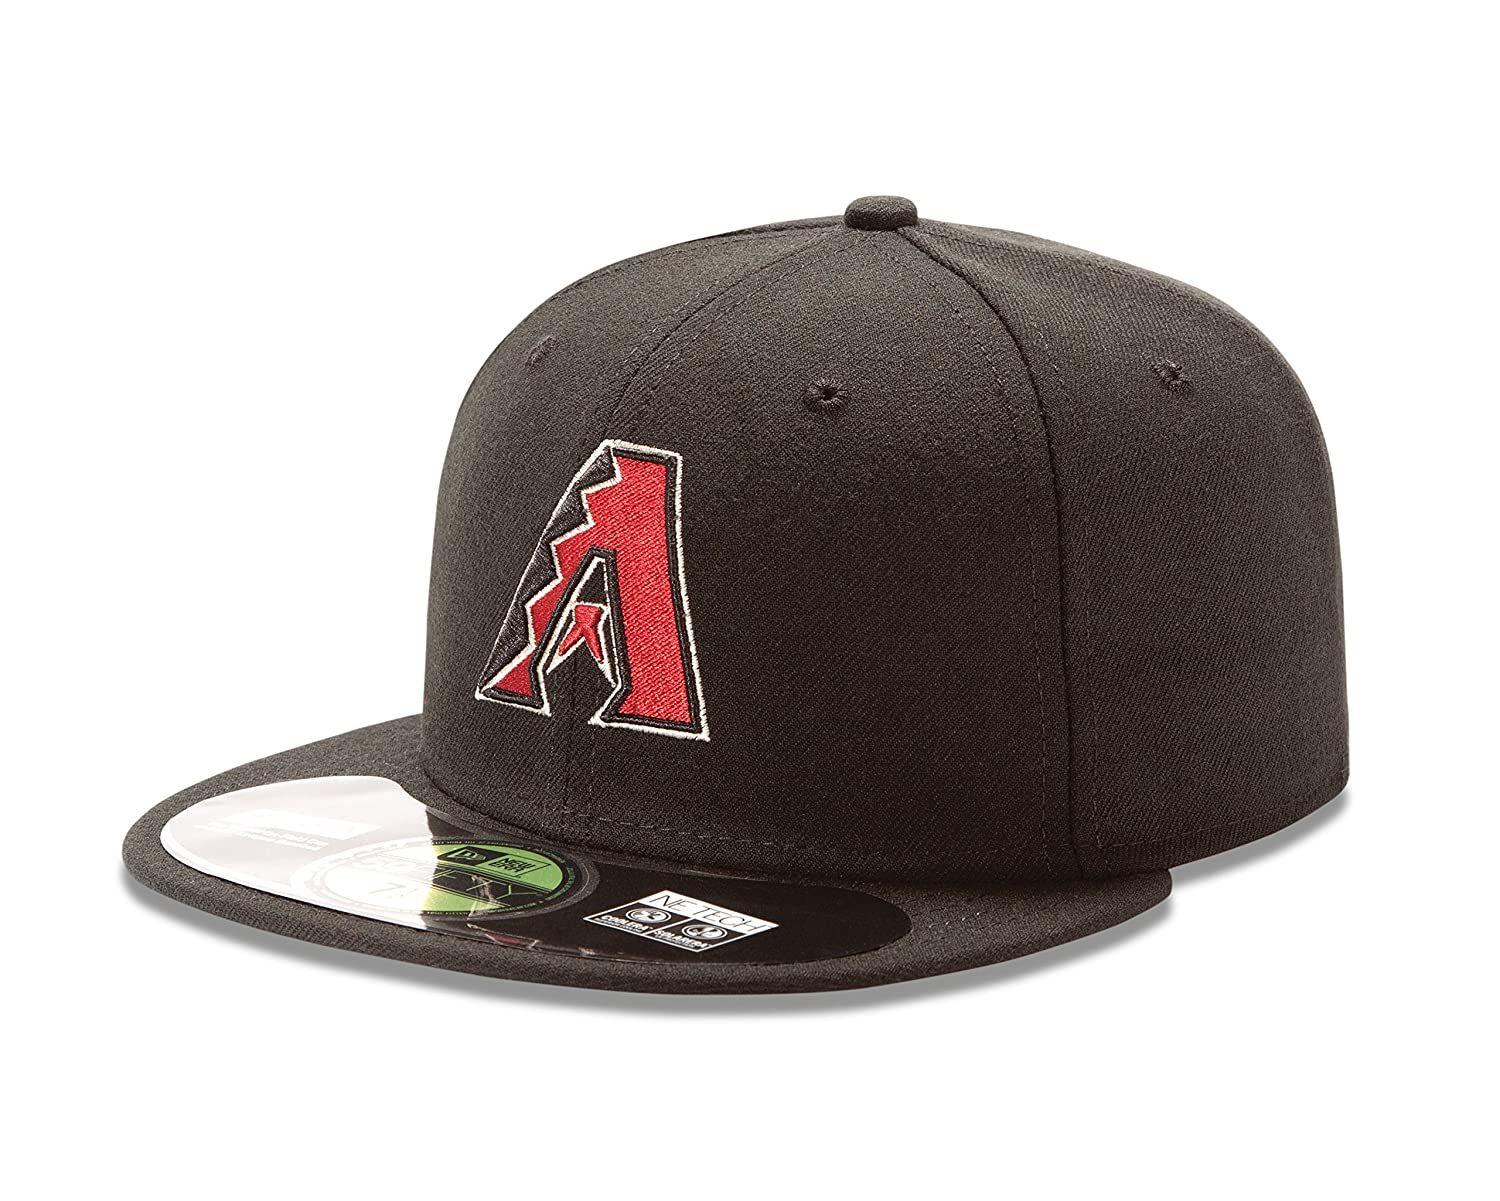 ecb9a28a1ab Amazon.com   New Era MLB Game Authentic Collection On Field 59FIFTY Fitted  Cap   Sports   Outdoors